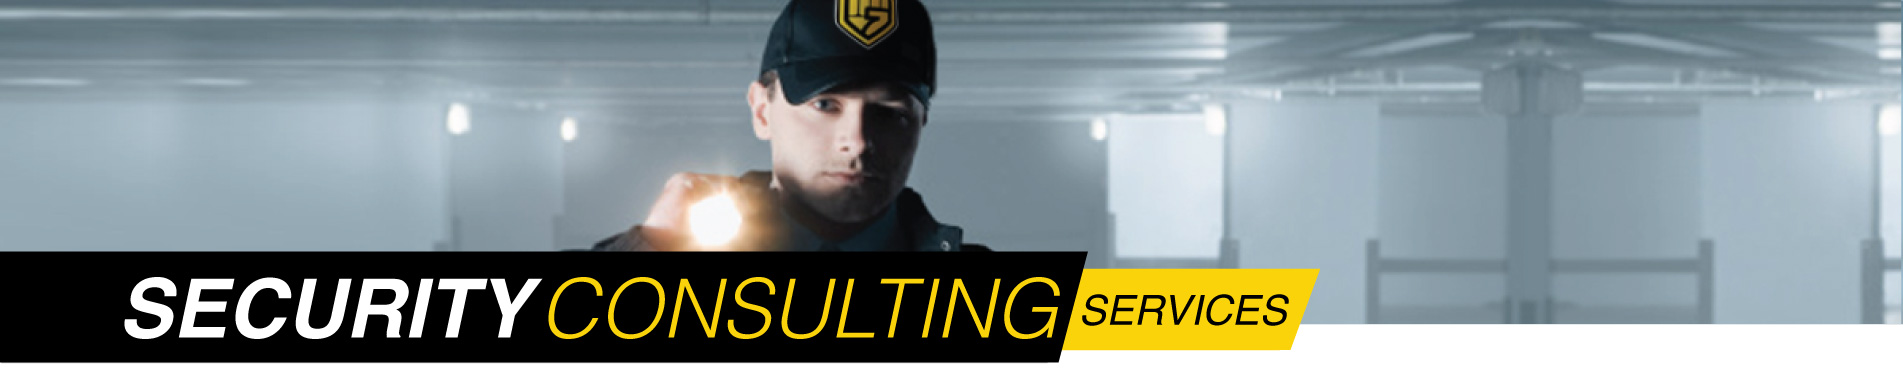 Houston area security consulting services